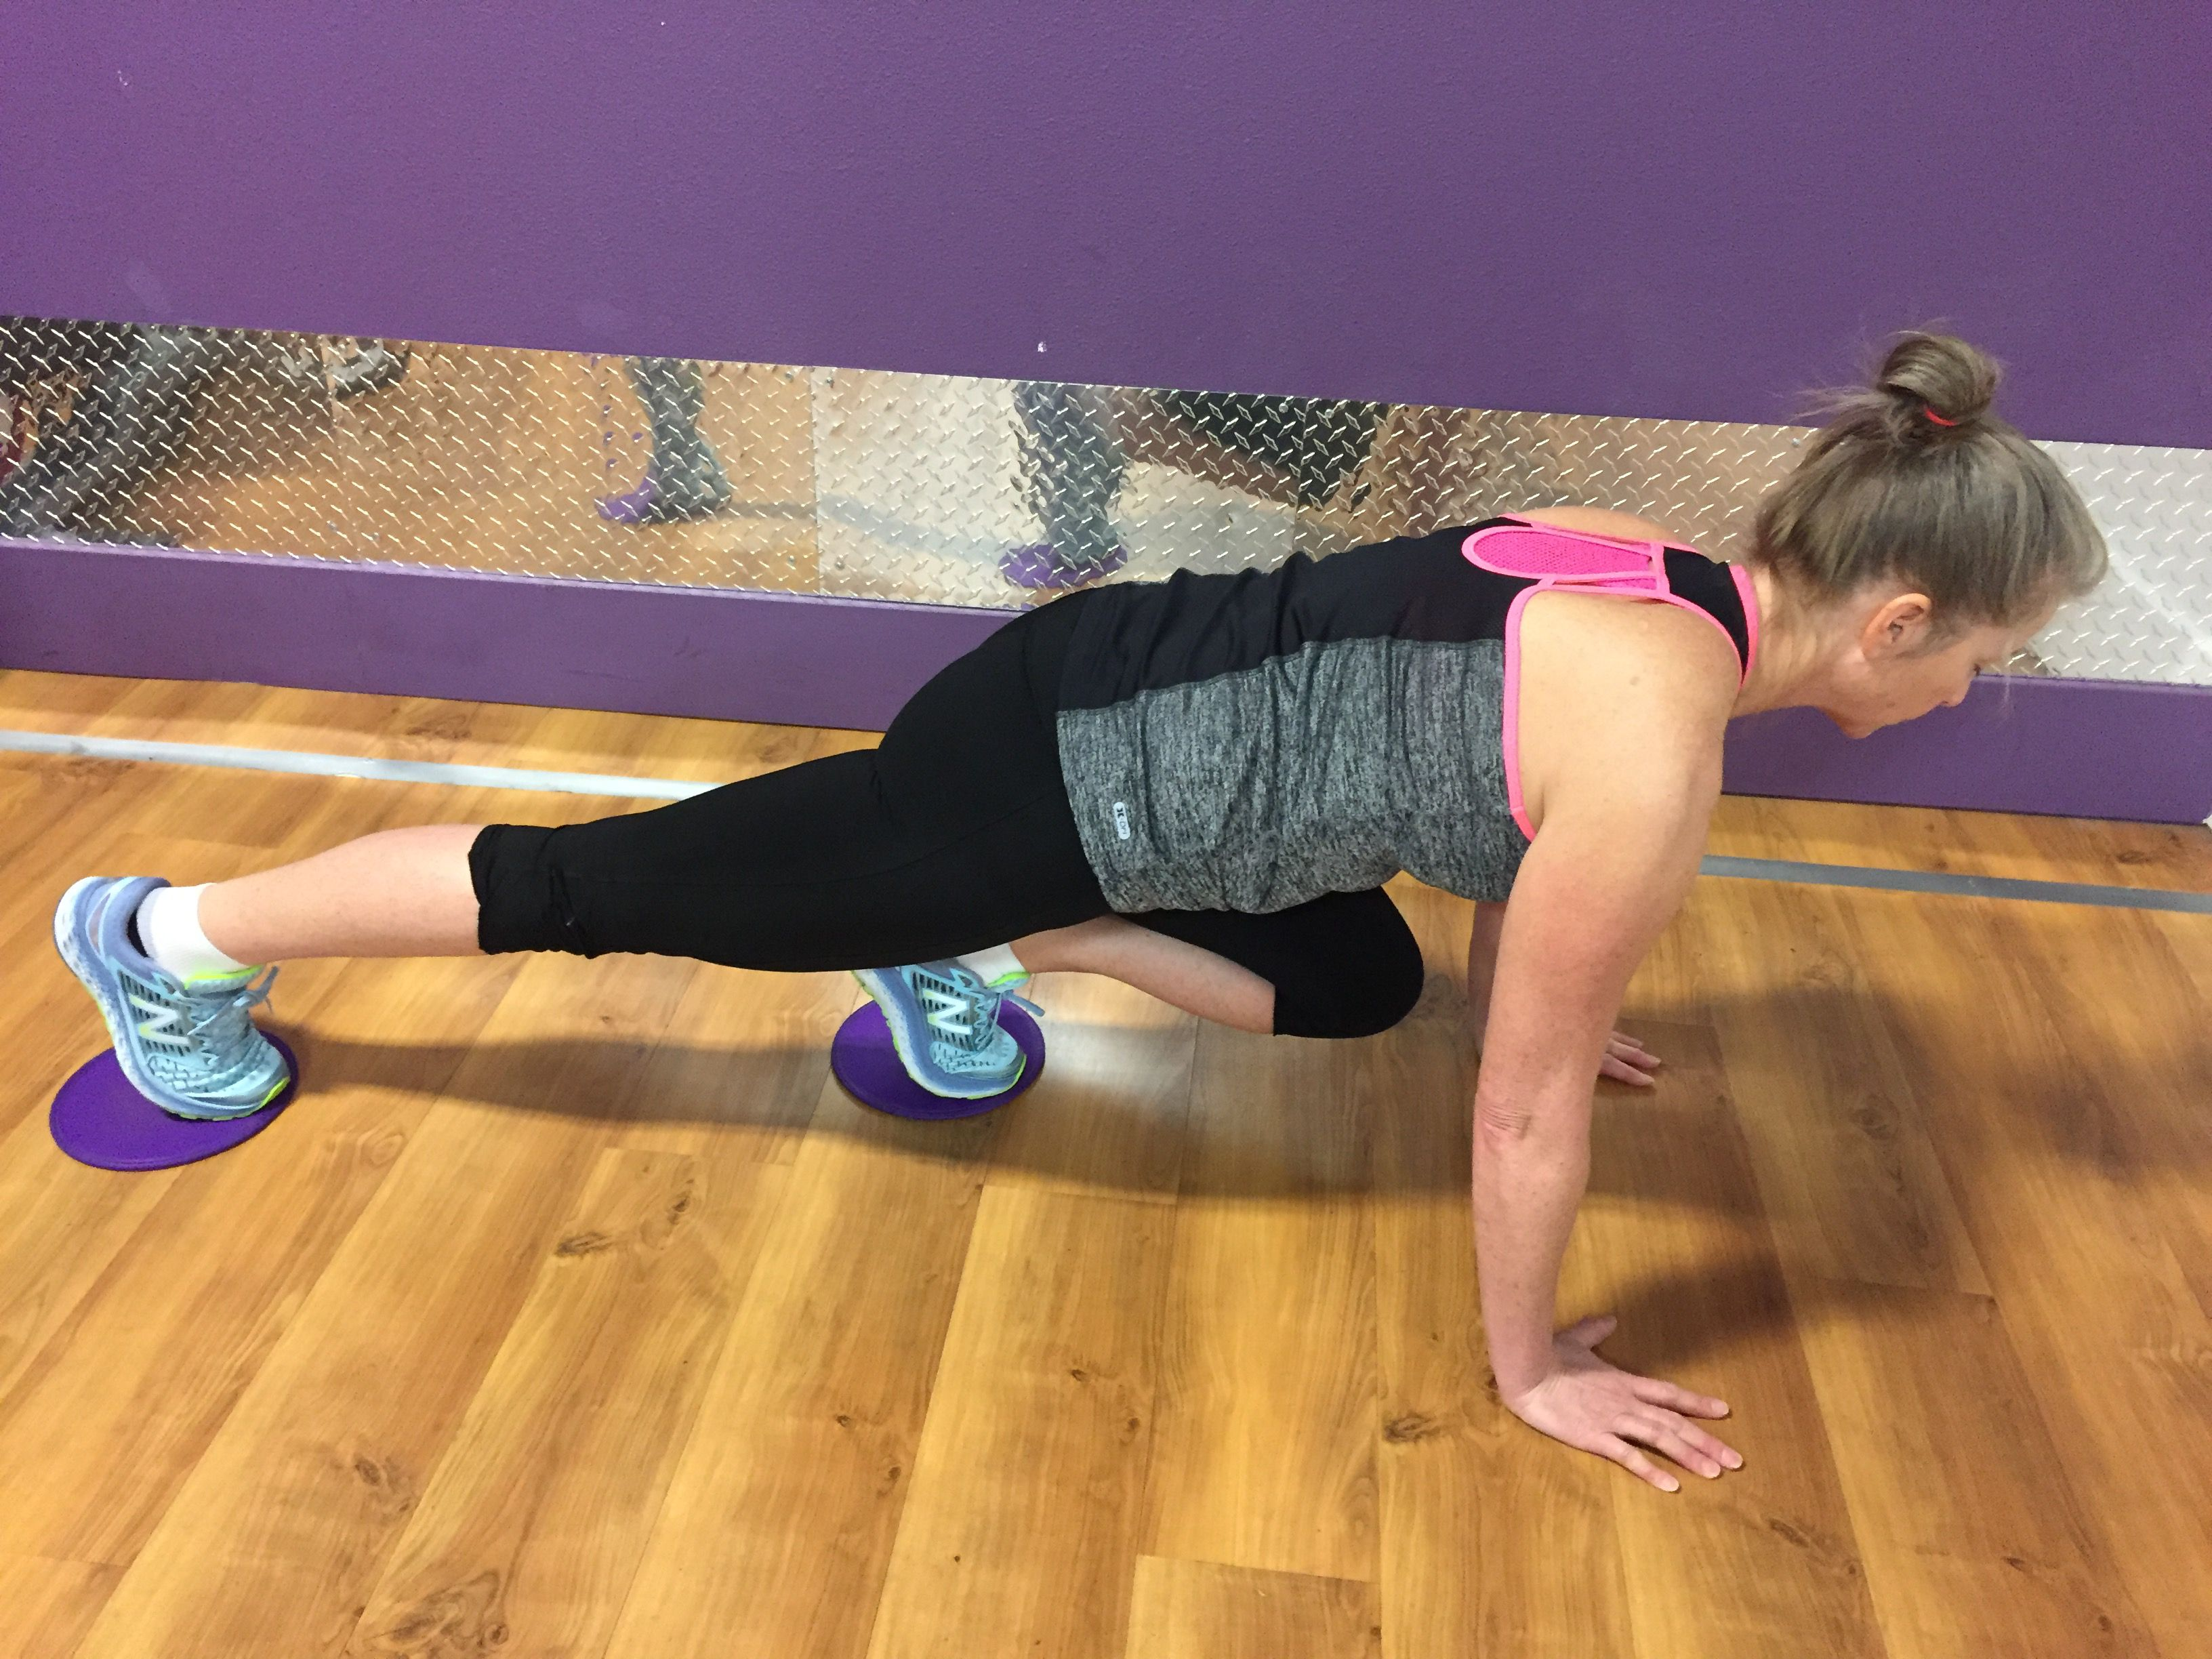 Get a Full-Body Workout With Sliding Disc Exercises